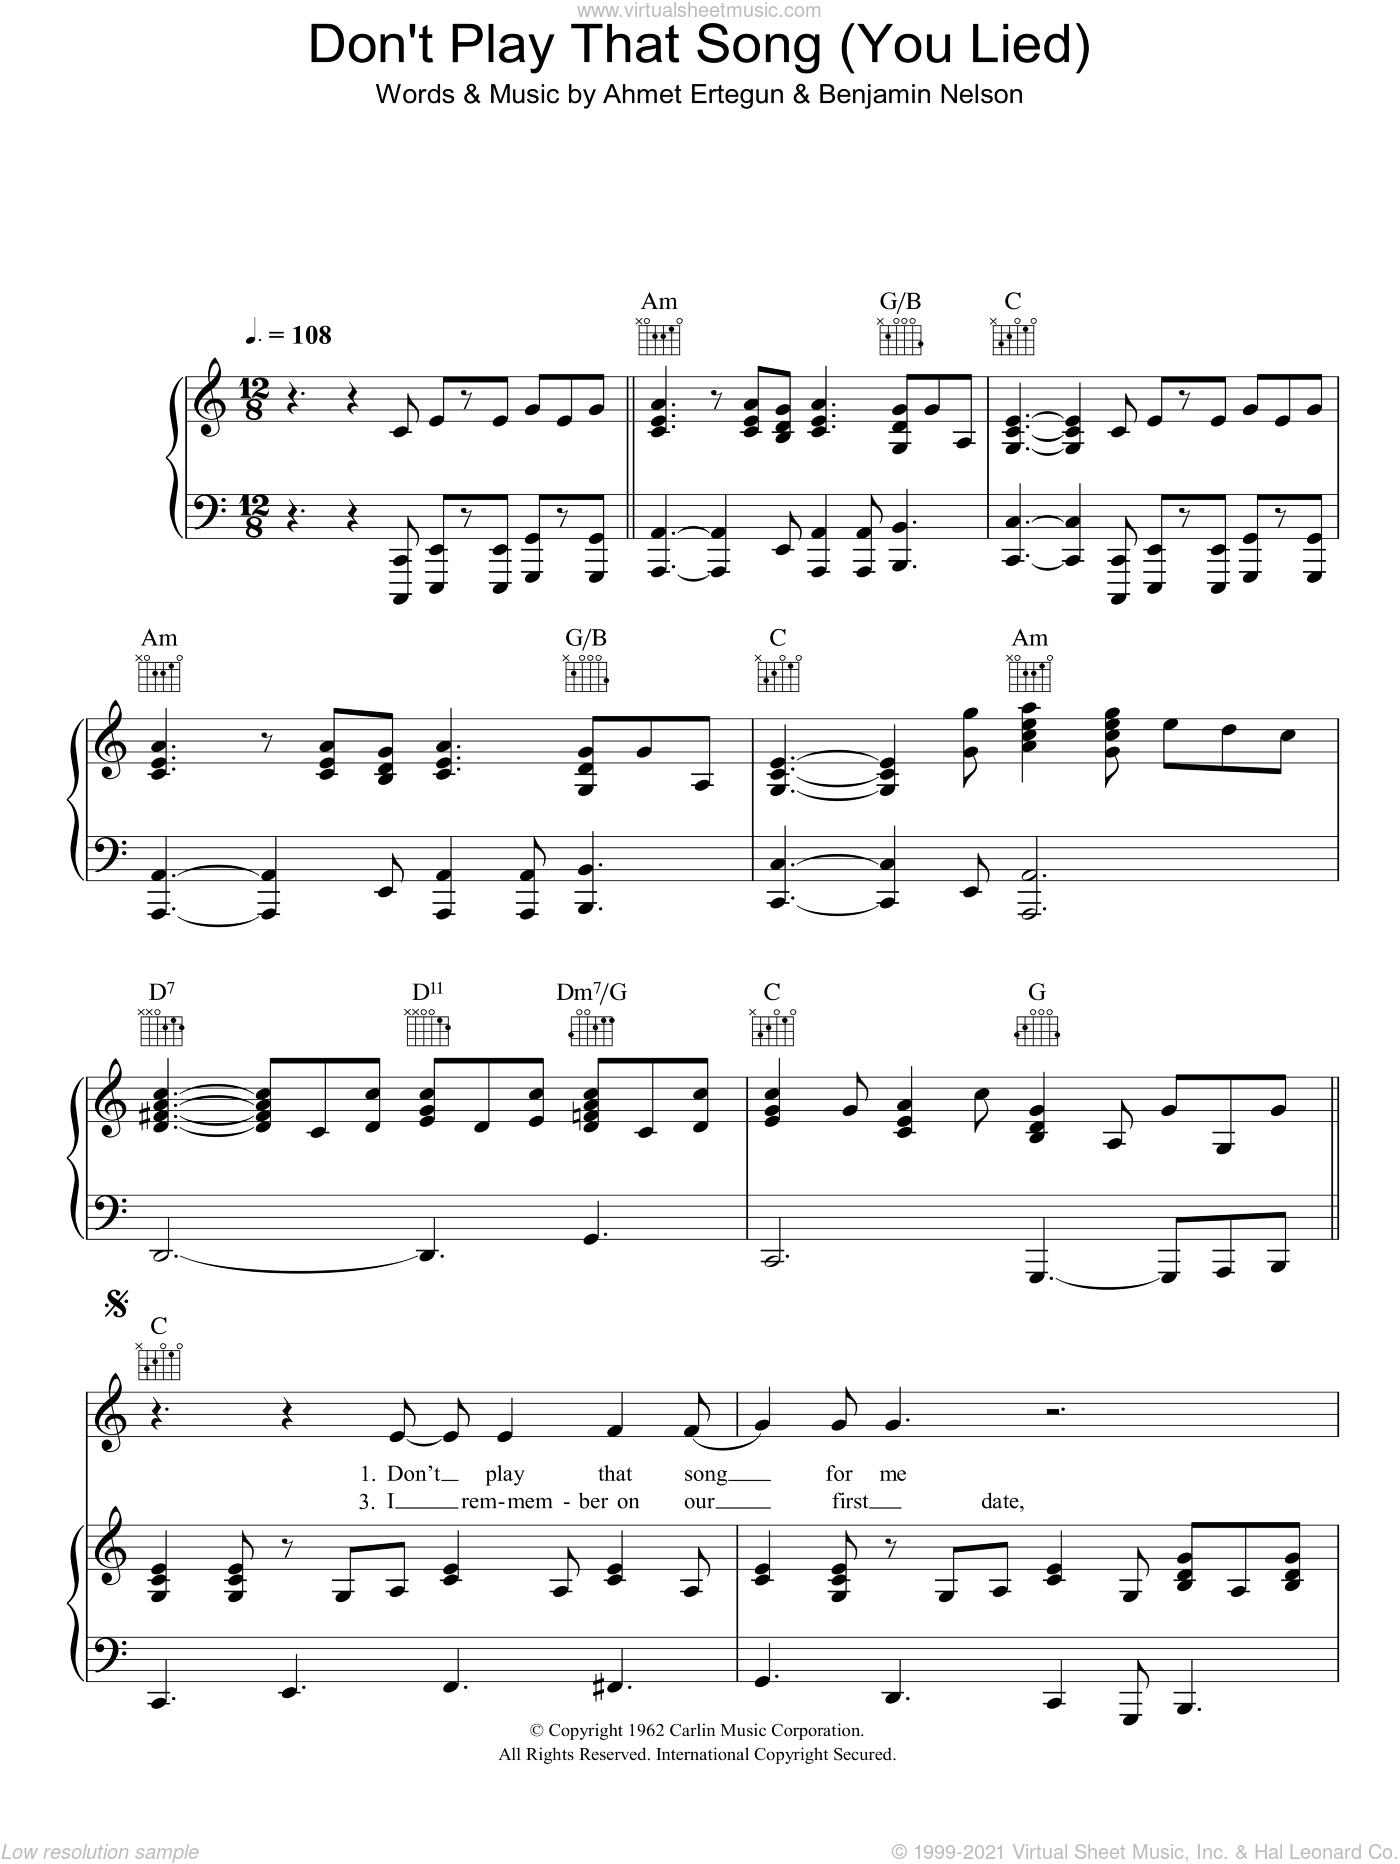 Don't Play That Song (You Lied) sheet music for voice, piano or guitar by Aretha Franklin and Ahmet Ertegun, intermediate. Score Image Preview.